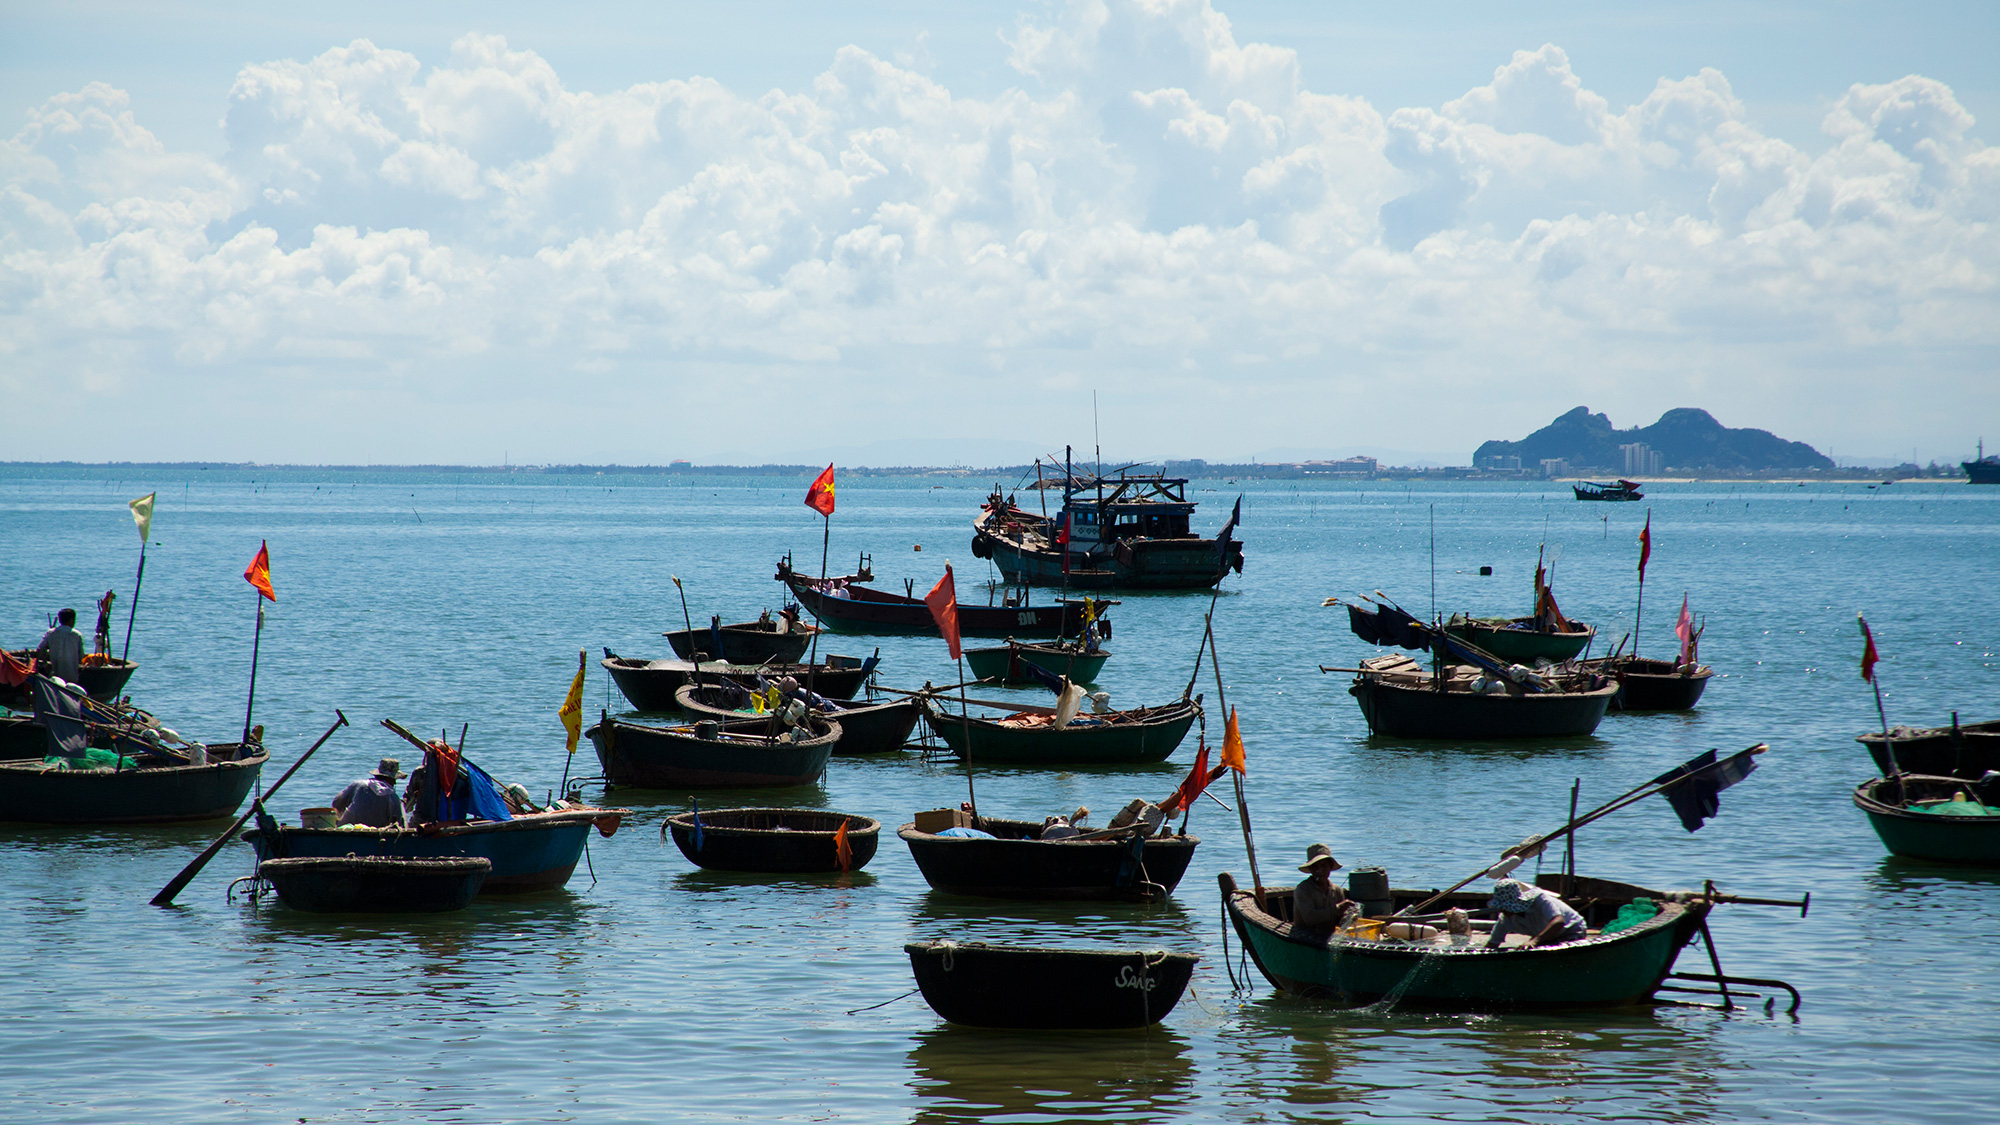 4-man-thai-fishing-village-da-nang.jpg